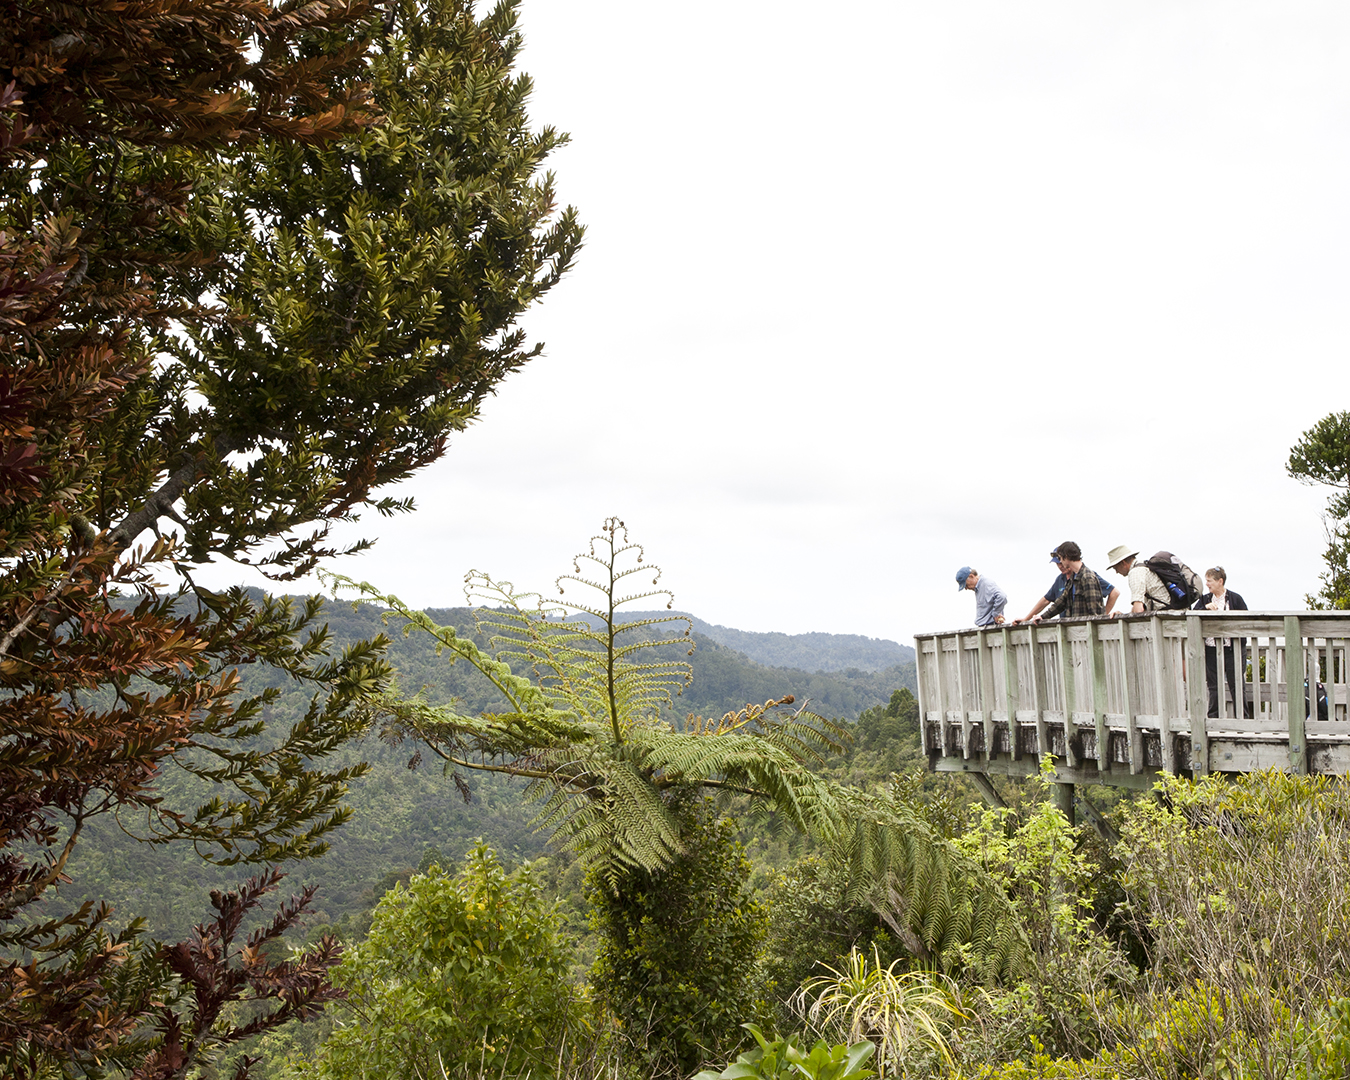 People take photos from a lookout spot.